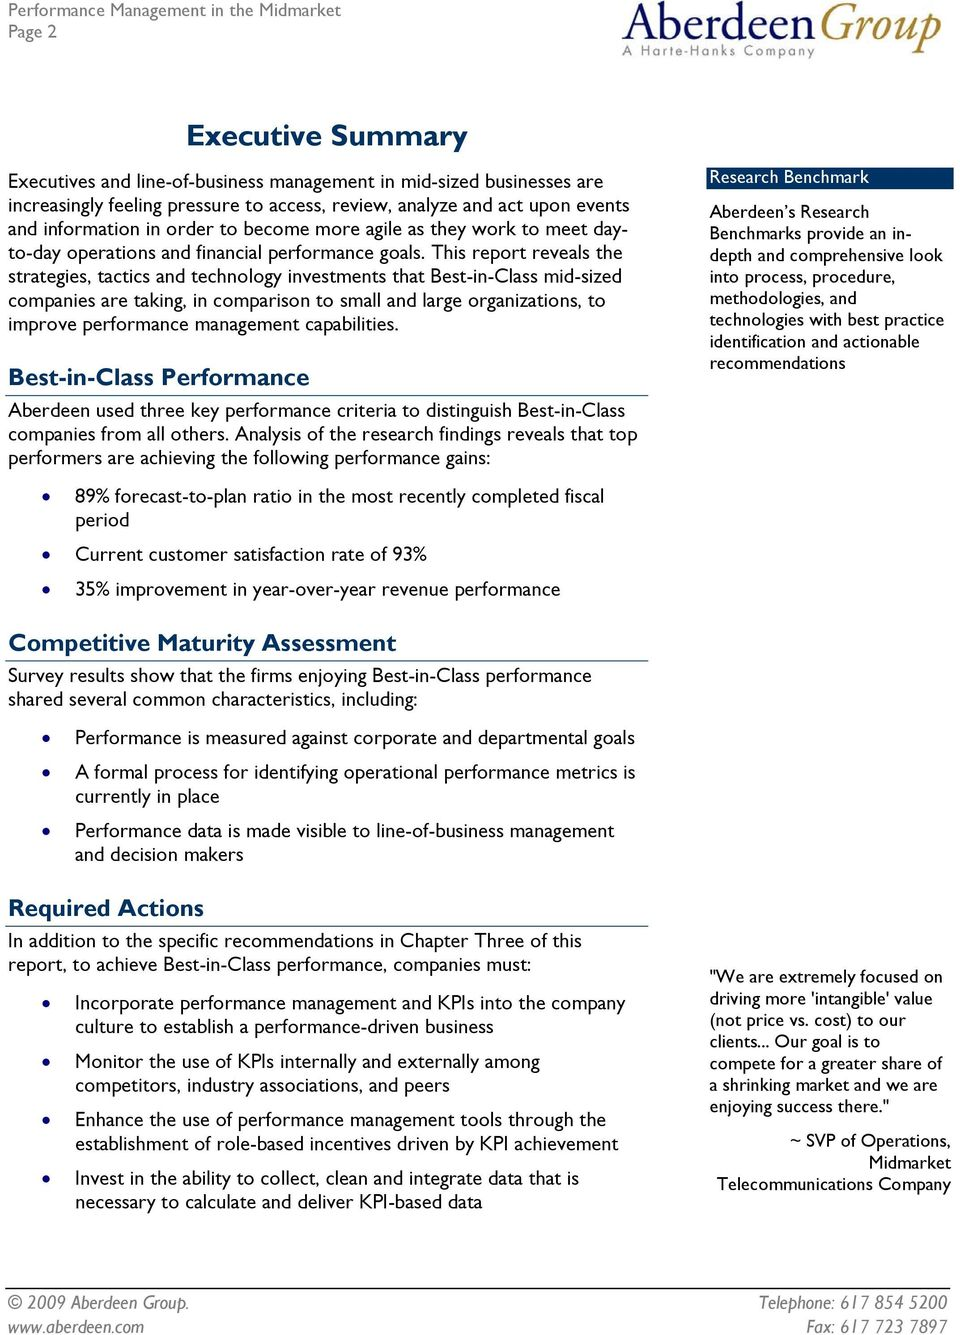 This report reveals the strategies, tactics and technology investments that Best-in-Class mid-sized companies are taking, in comparison to small and large organizations, to improve performance